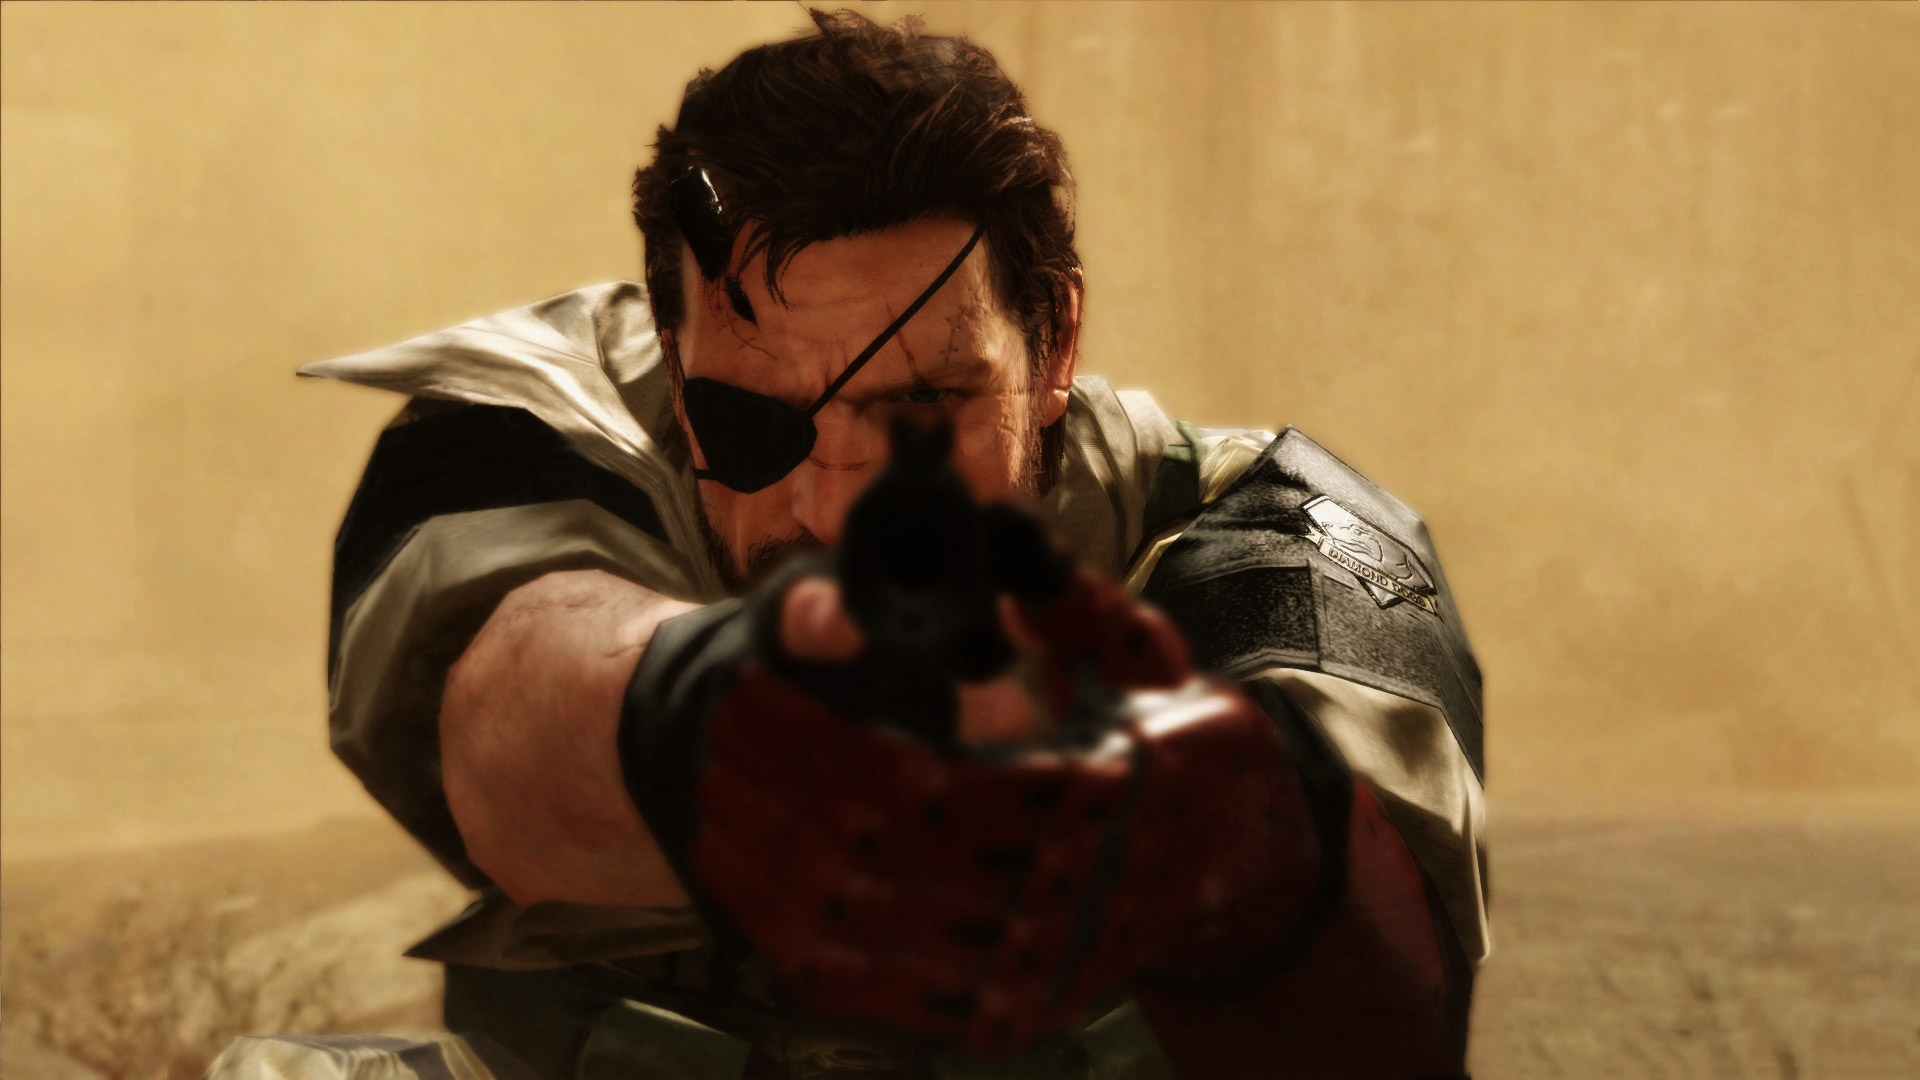 Metal Gear Solid V The Phantom Pain wallpaper 4